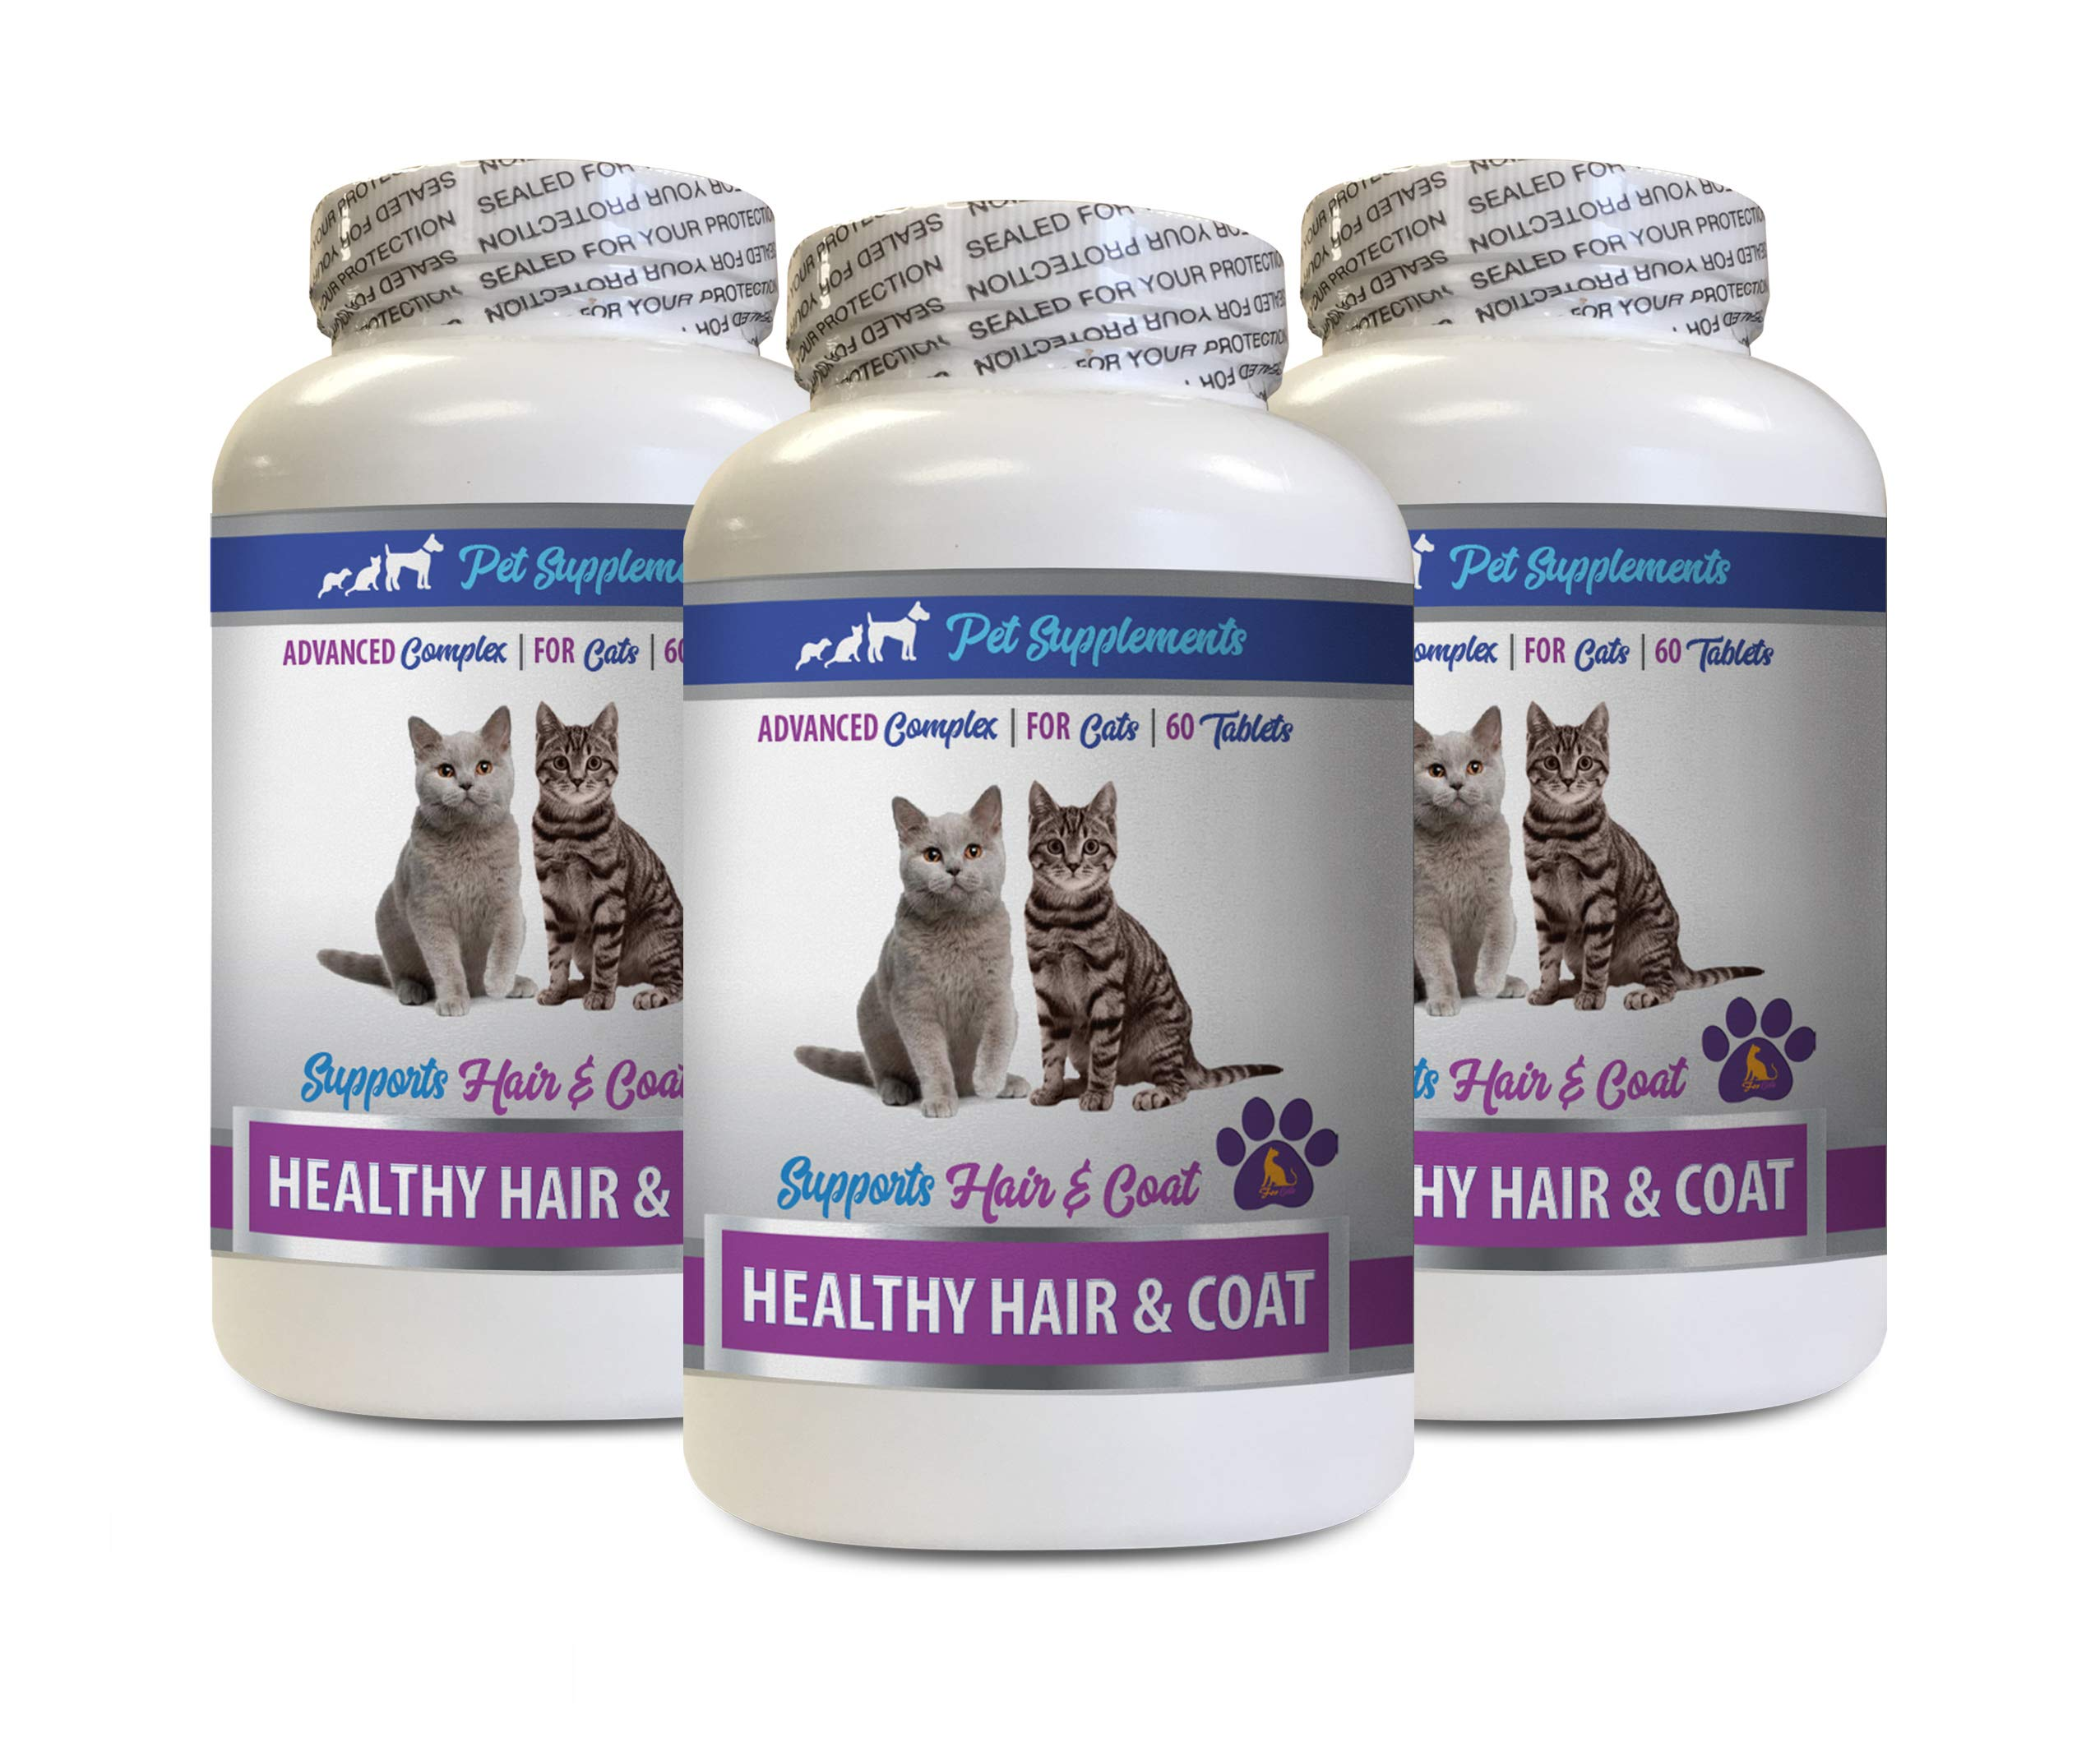 Dry Skin for Cats - Best Healthy Hair and Coat Supplement for Cats - Advanced Complex - Nail Health - Vitamin b12 for Cats - 3 Bottles (180 Tablets) by PET SUPPLEMENTS